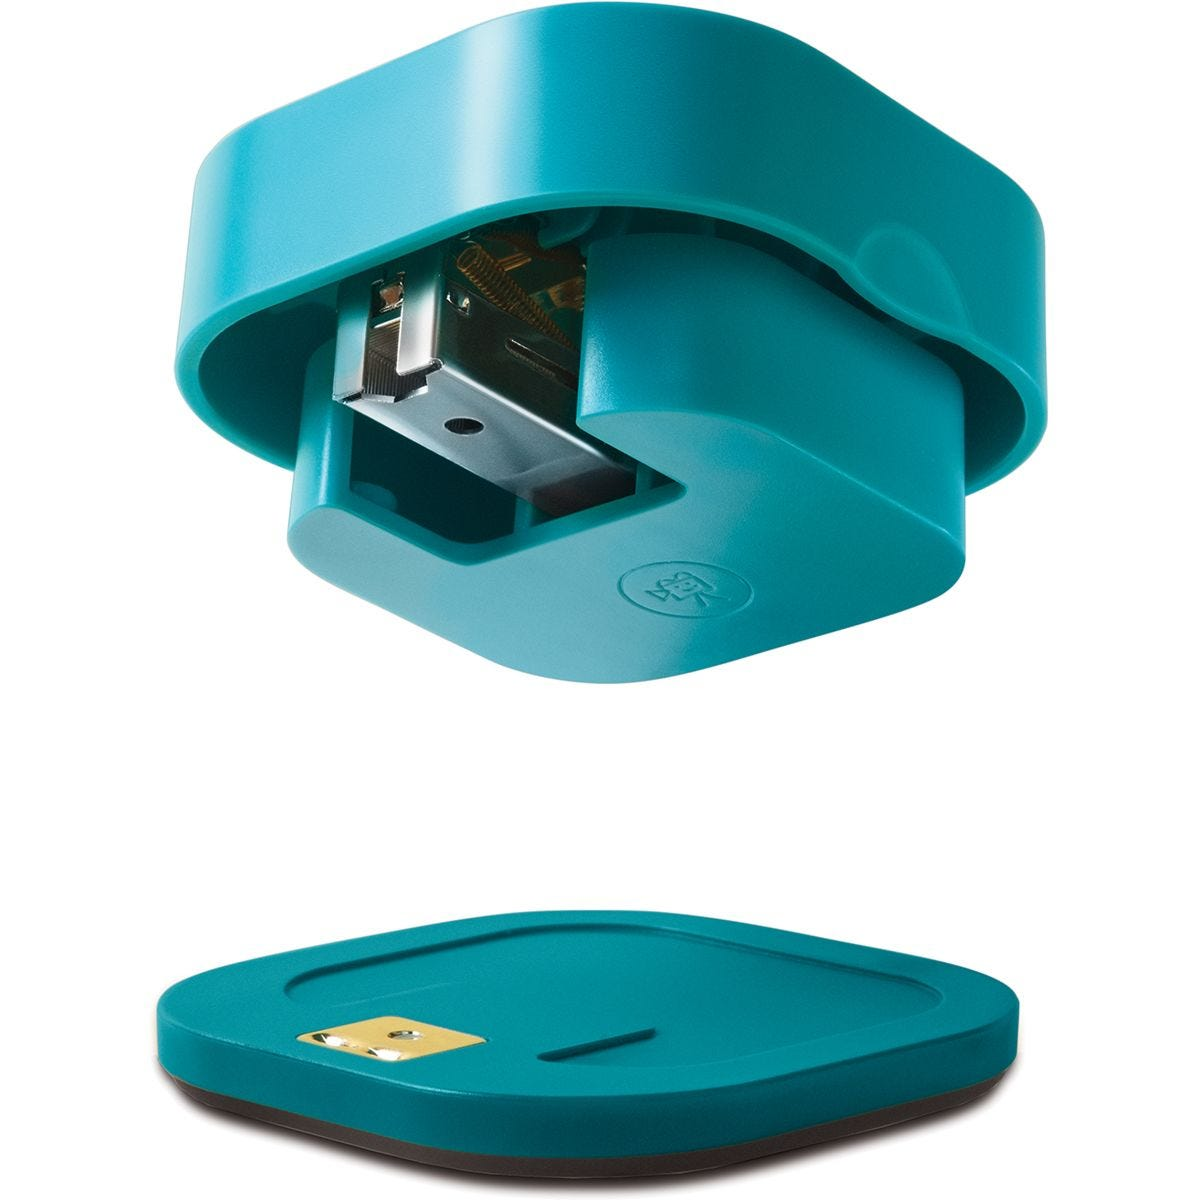 Quirky Align Magnetic Detachable Stapler - Blue